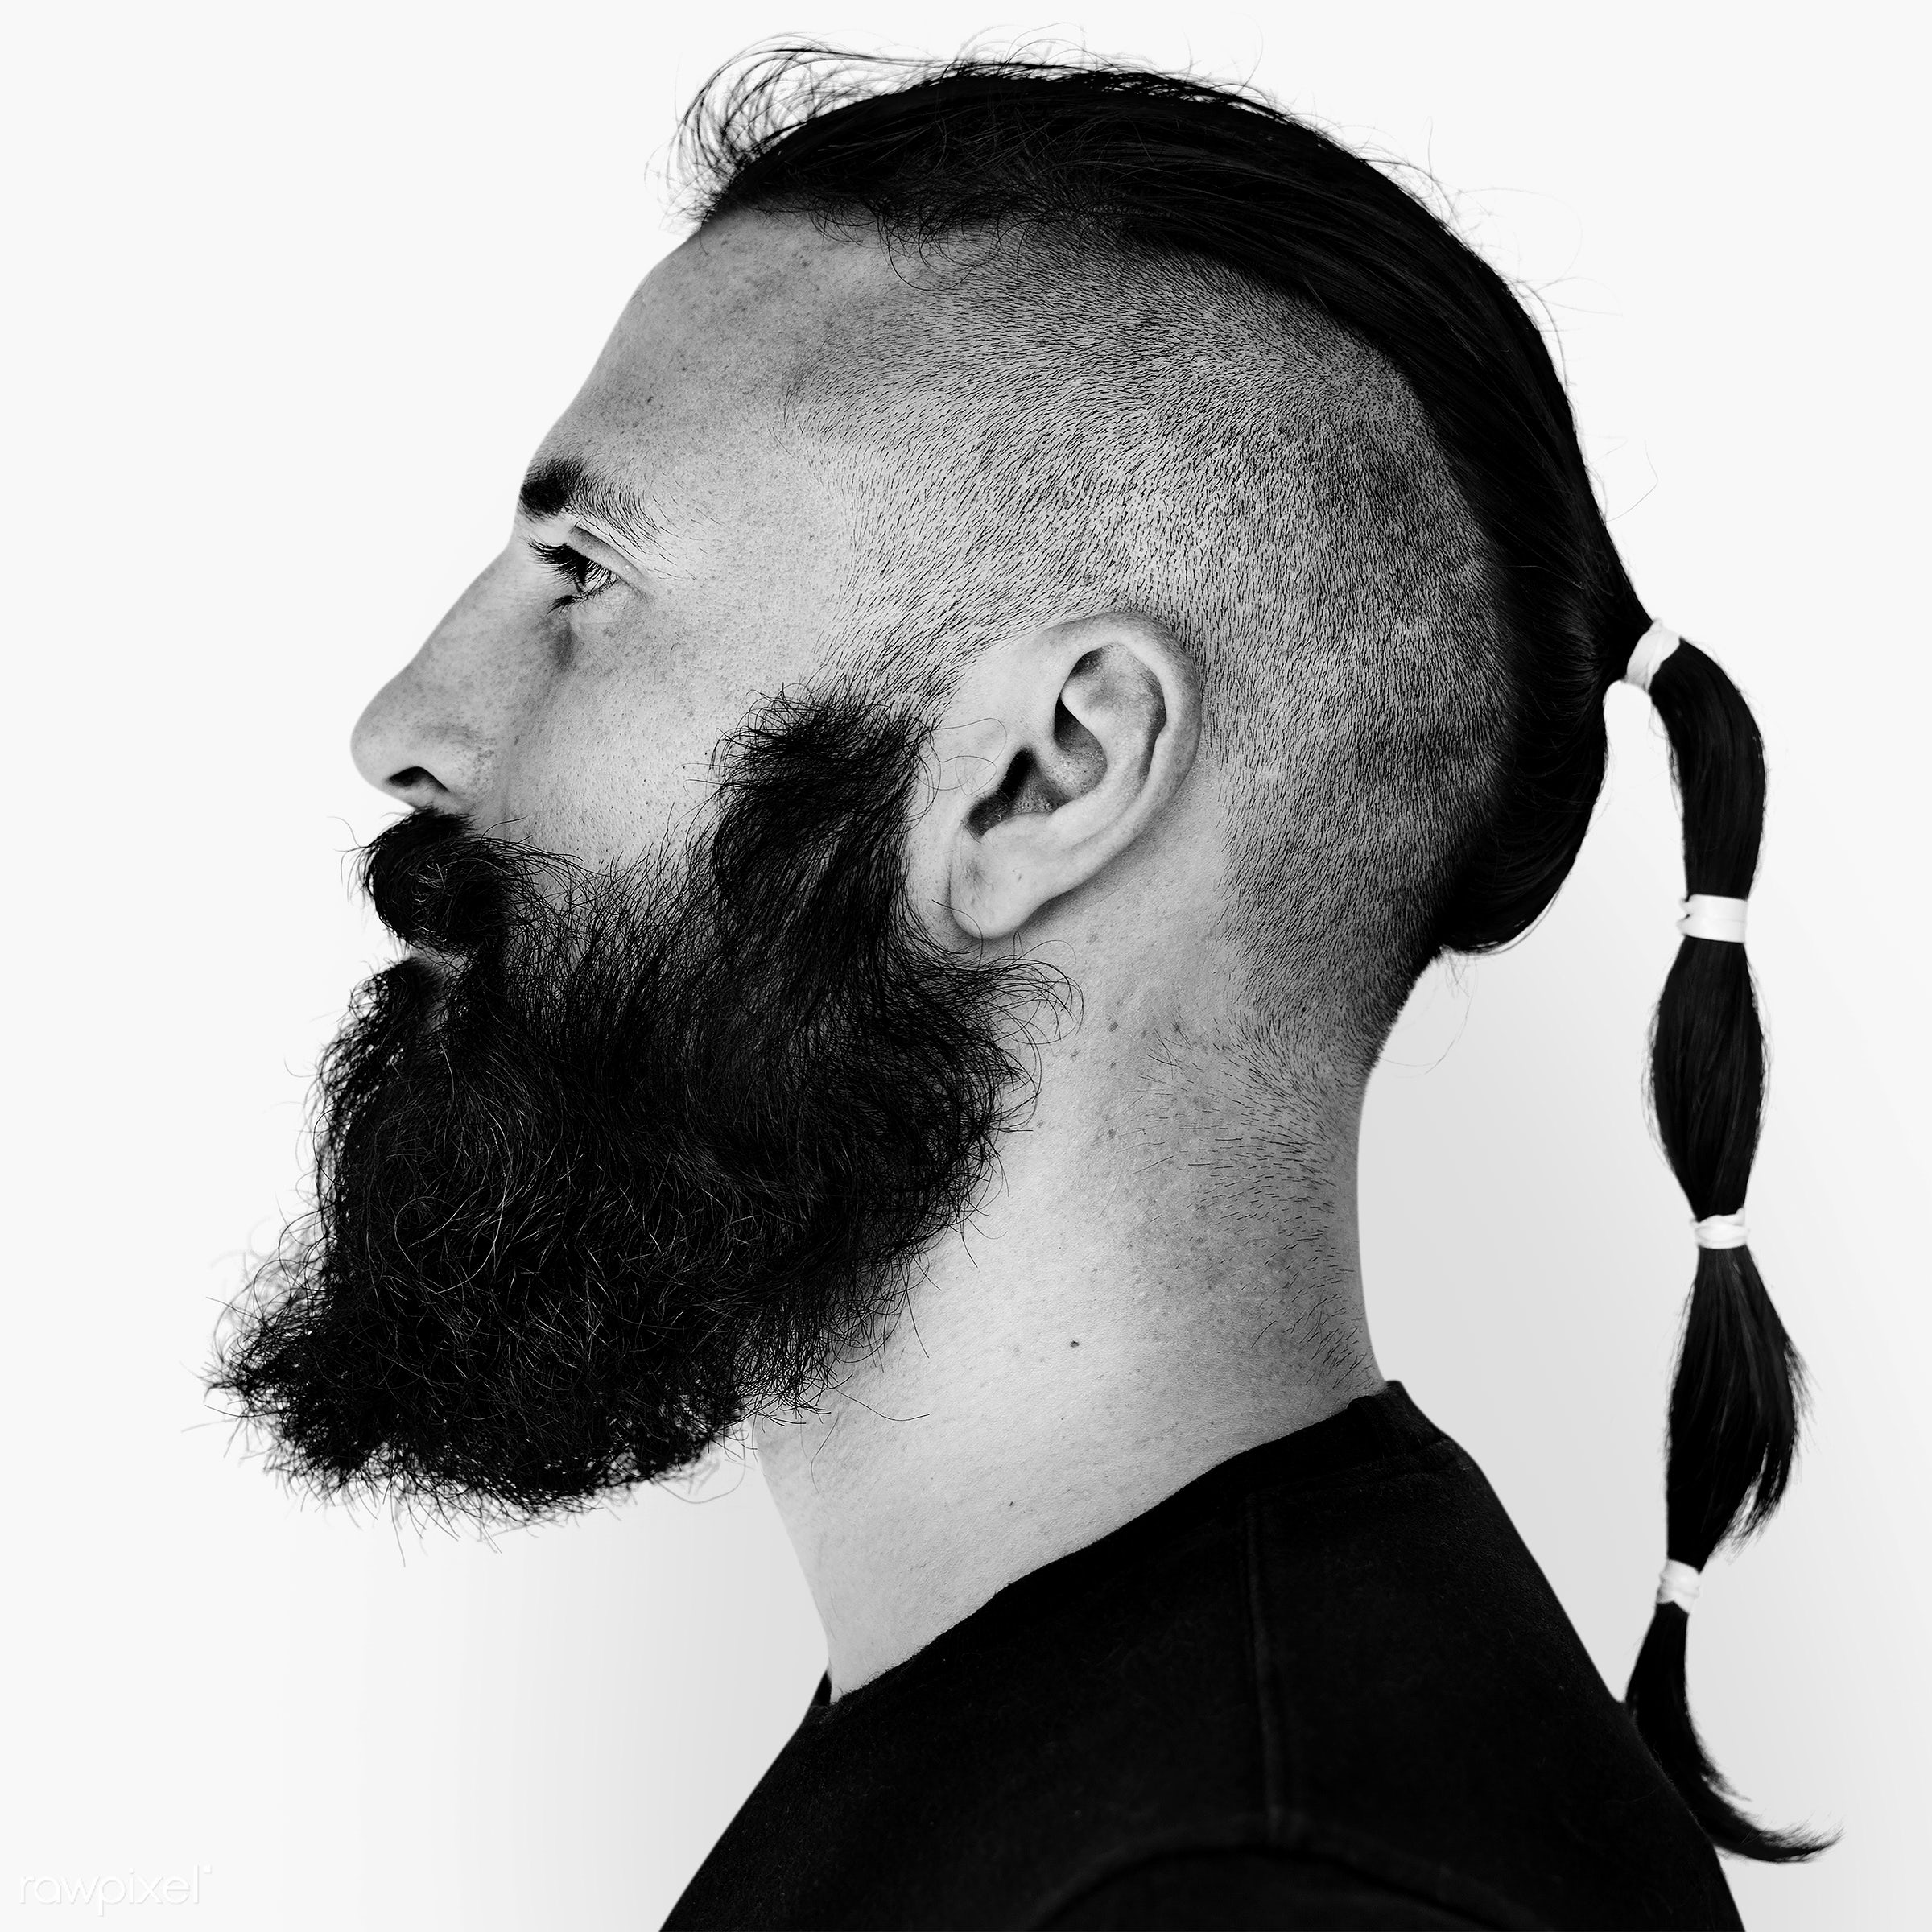 Portrait of an Italian man - beard, black and white, emotion, europe, european, expression, face, feeling, grayscale, hair...